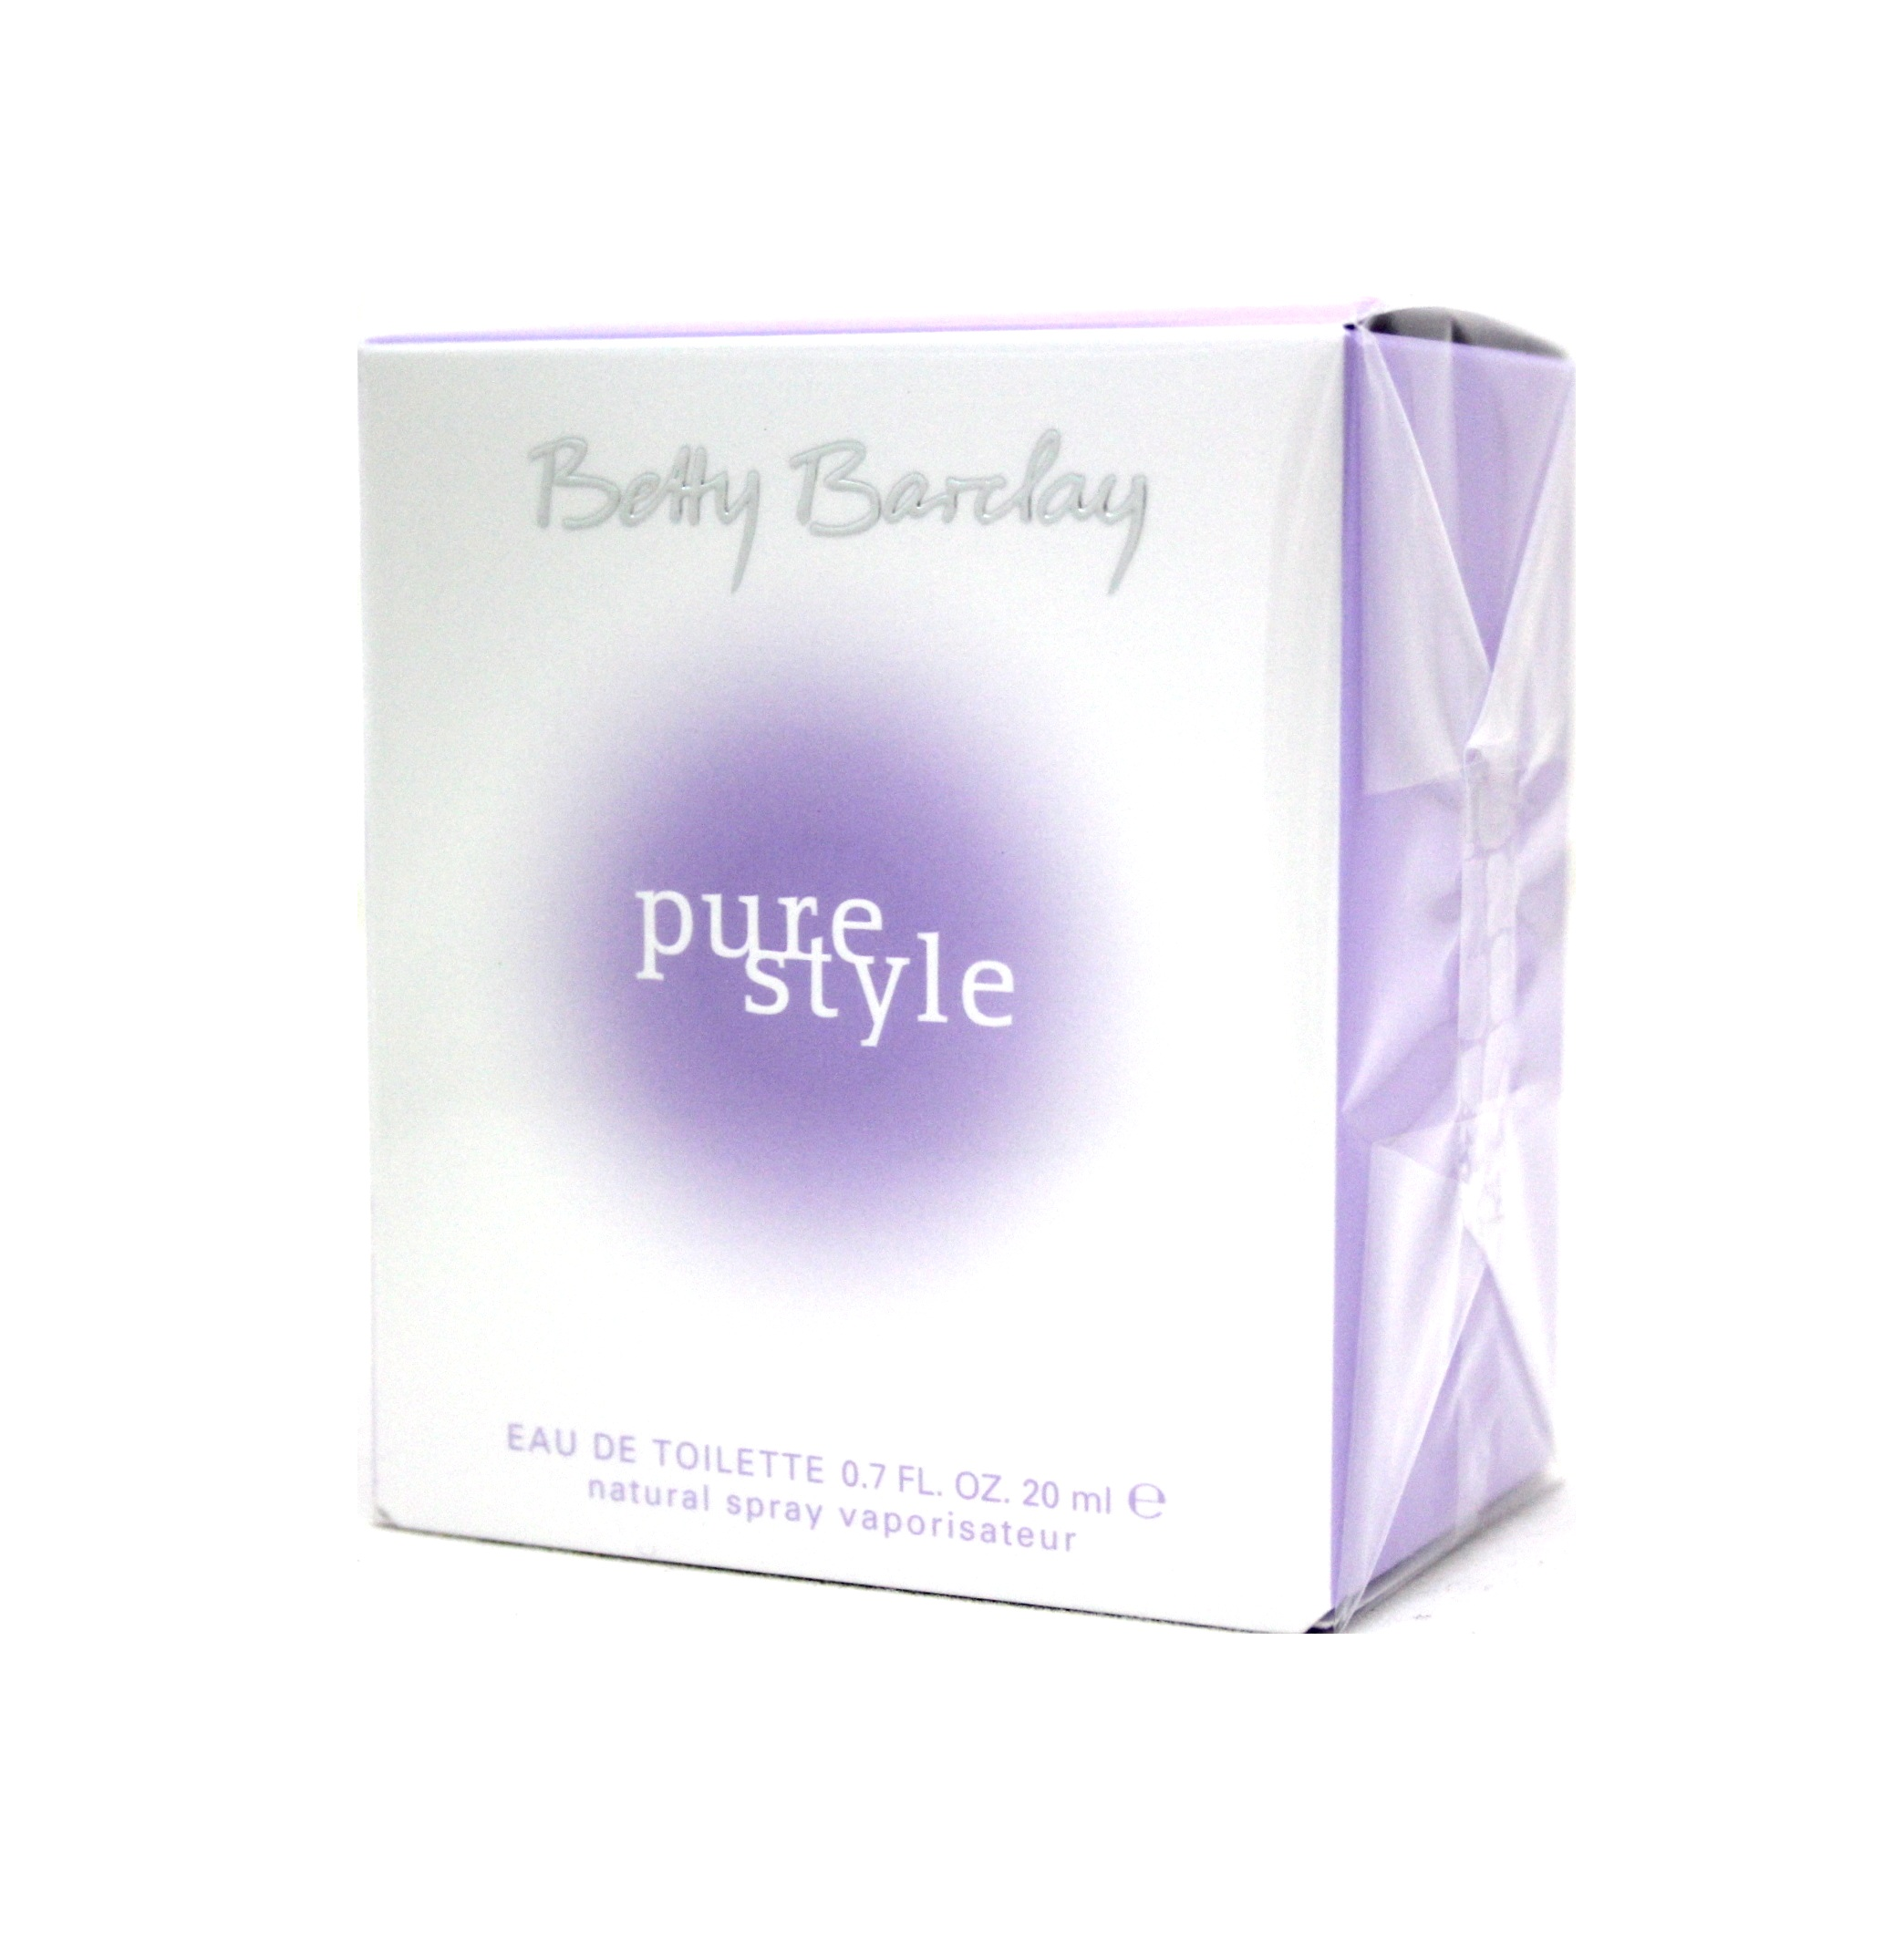 betty barclay pure style eau de toilette edt f r frauen von betty barclay. Black Bedroom Furniture Sets. Home Design Ideas